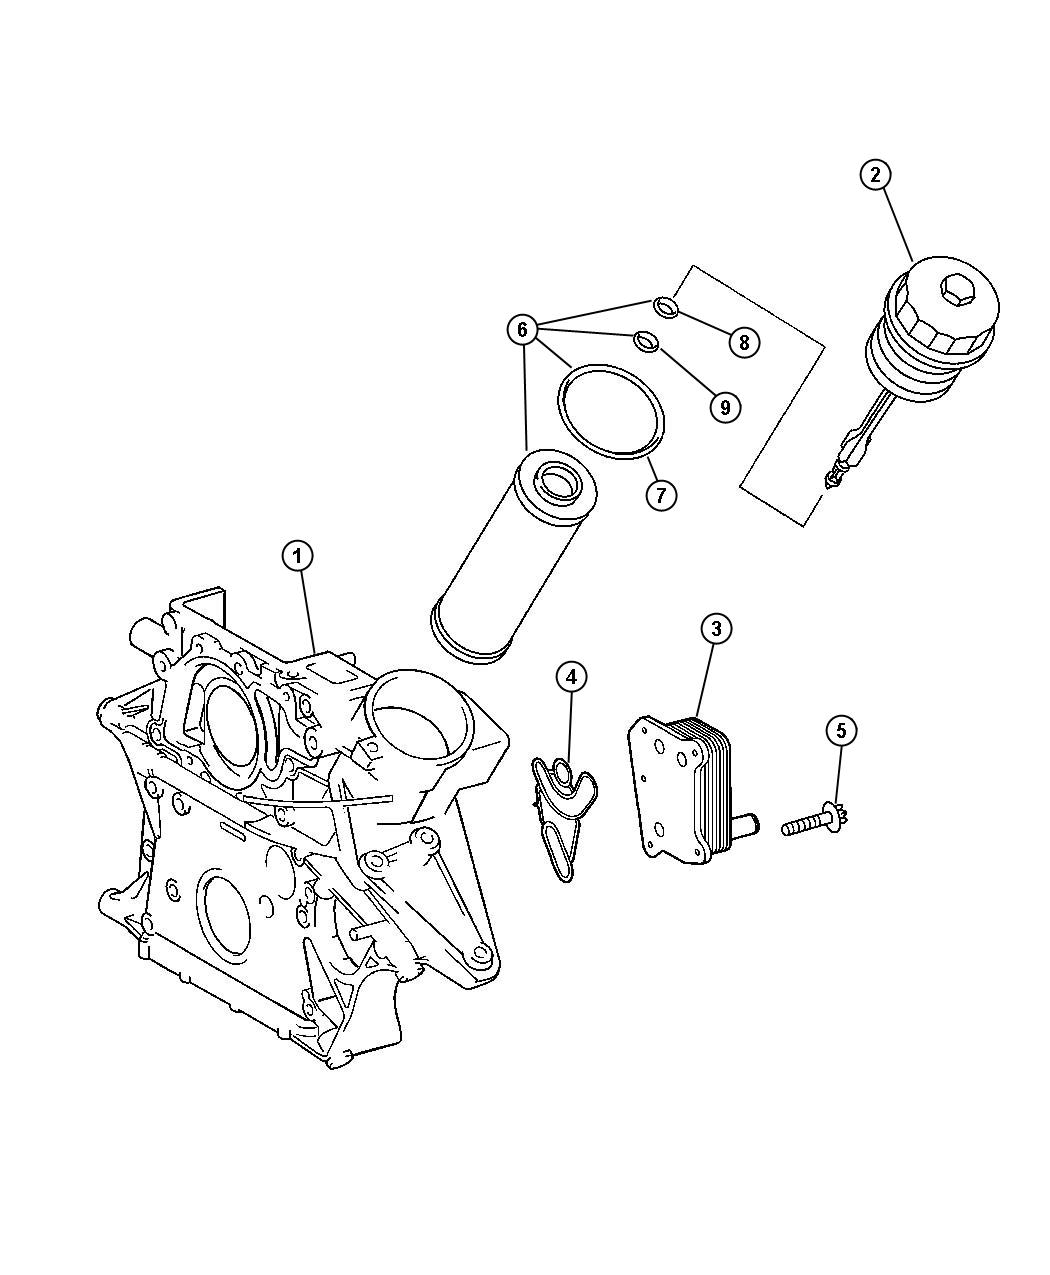 Gm I5 Engine, Gm, Free Engine Image For User Manual Download